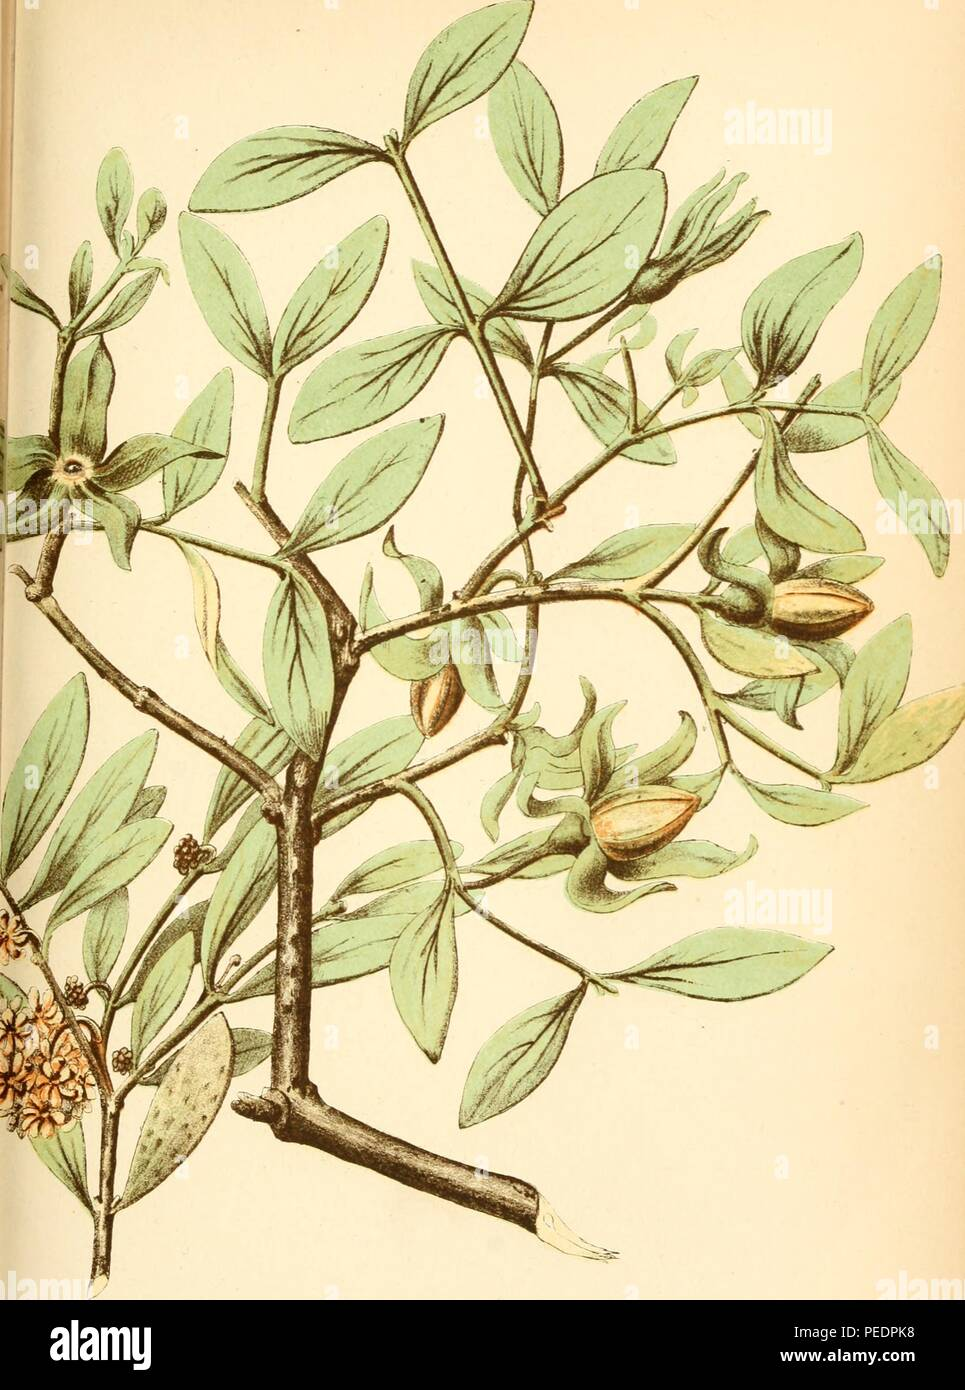 Color print depicting a leafy green plant with small yellow flowers, likely a Galphimia gracilis, a native of eastern Mexico that is commonly known as gold shower, slender gold shower, shower-of-gold, or thryallis, 2015. Courtesy Internet Archive. () - Stock Image